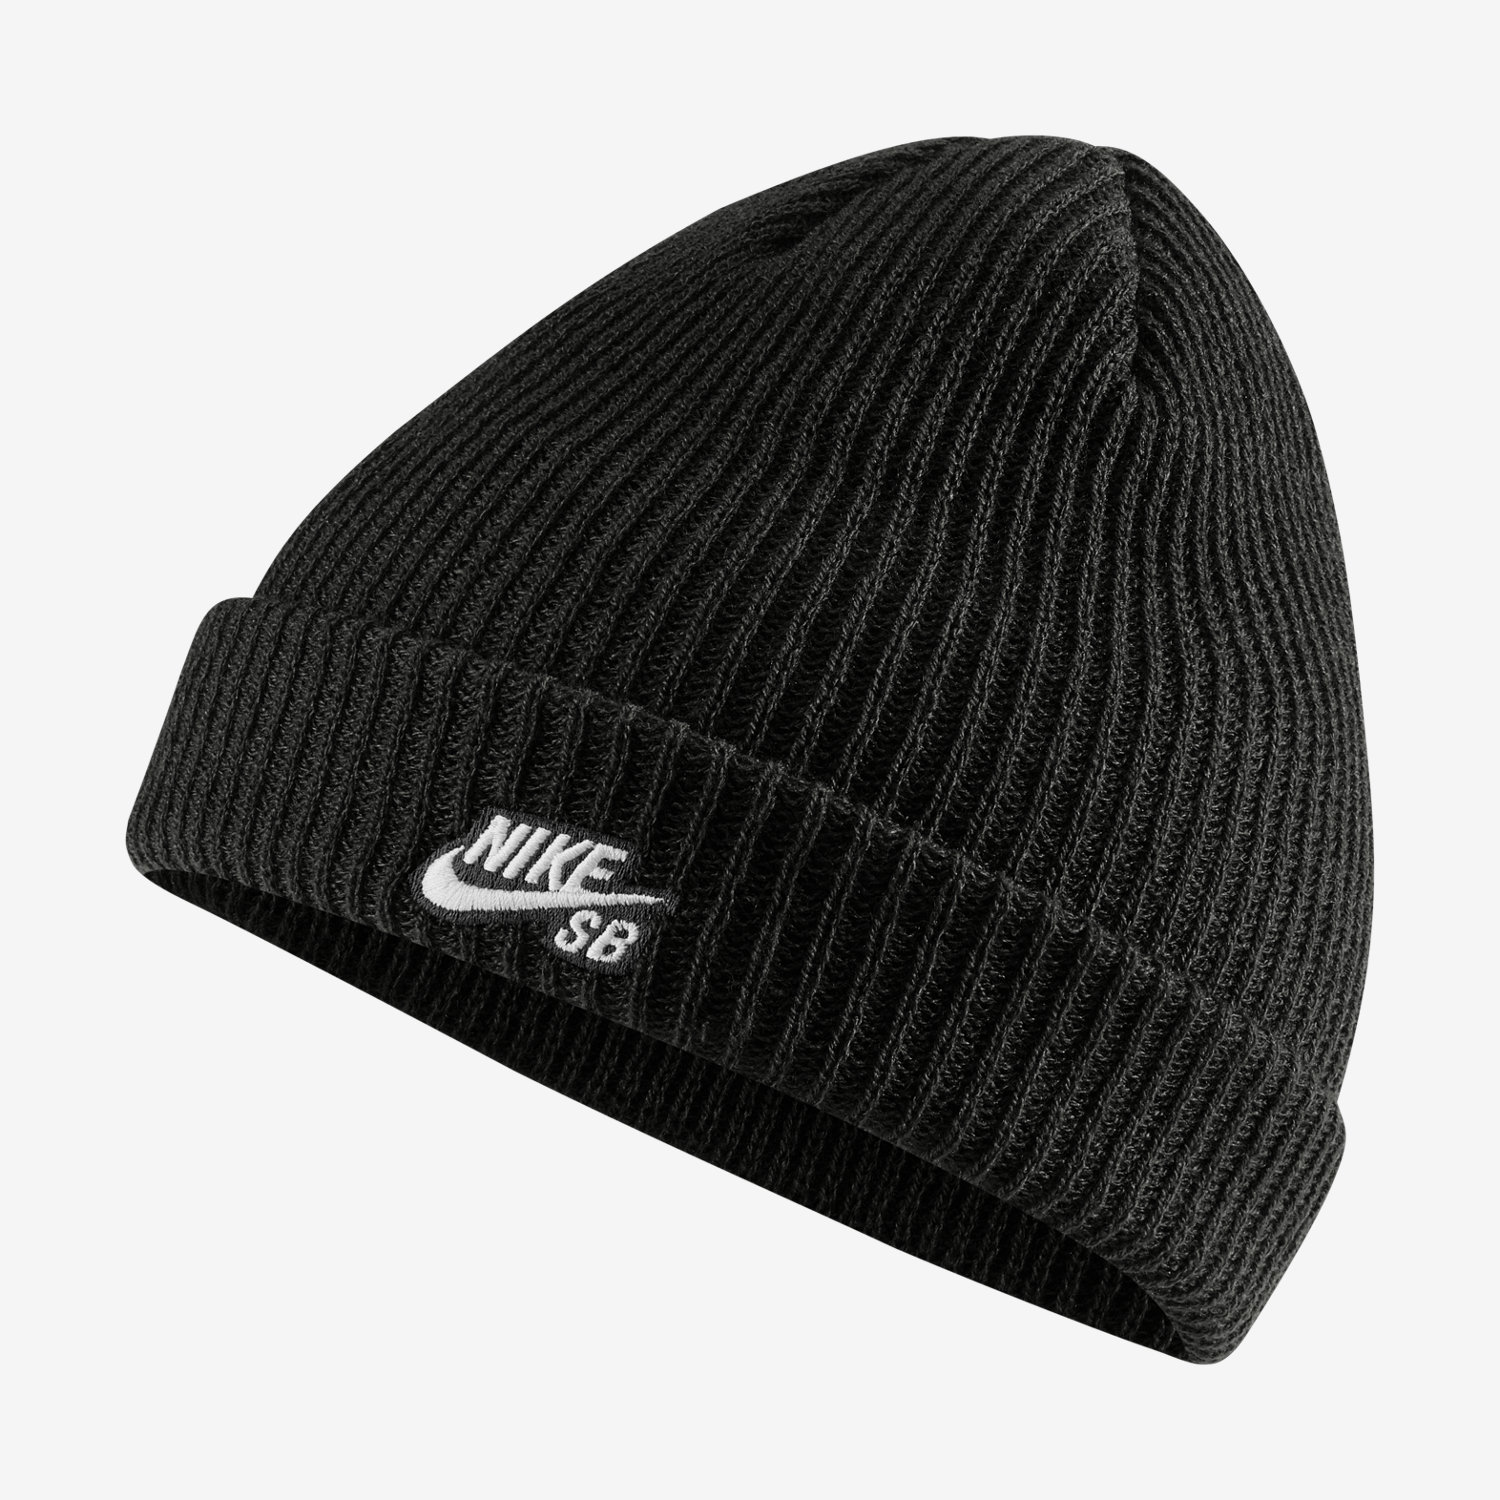 1c505a948c8 Welcome to Lakeview Comprehensive Dentistry. nike knit hat